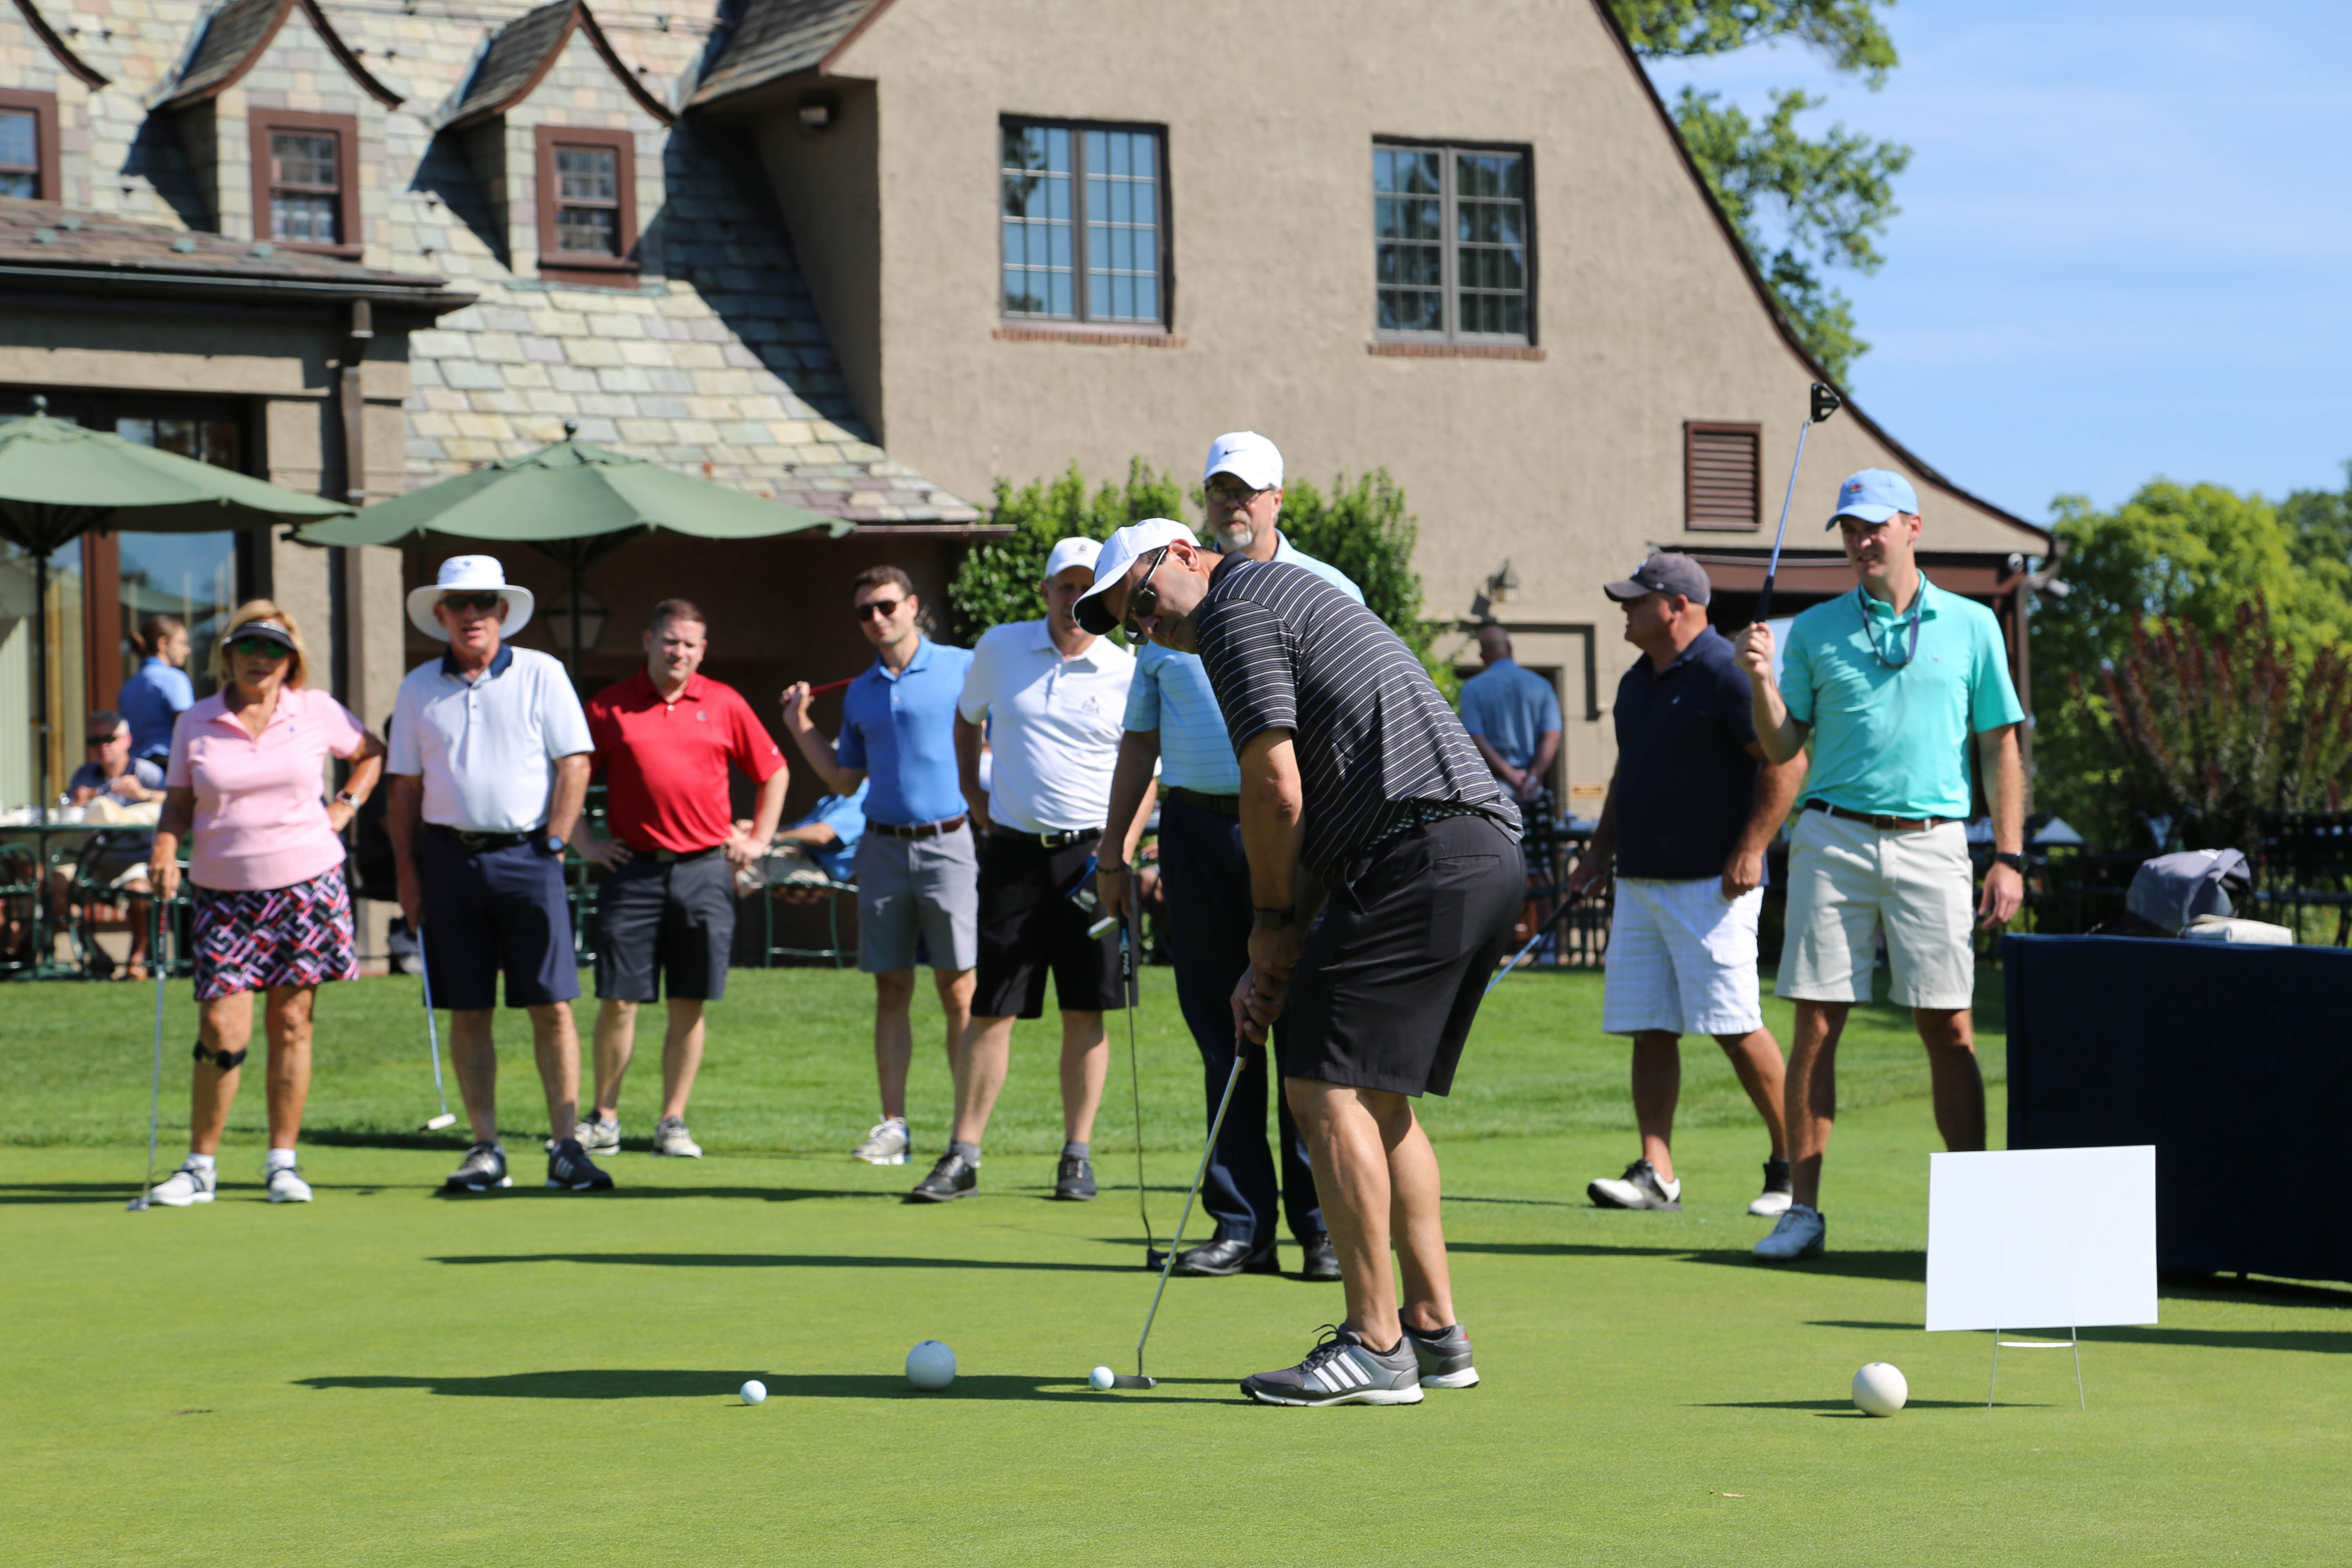 03b - FedcapGolf19_Putting_28